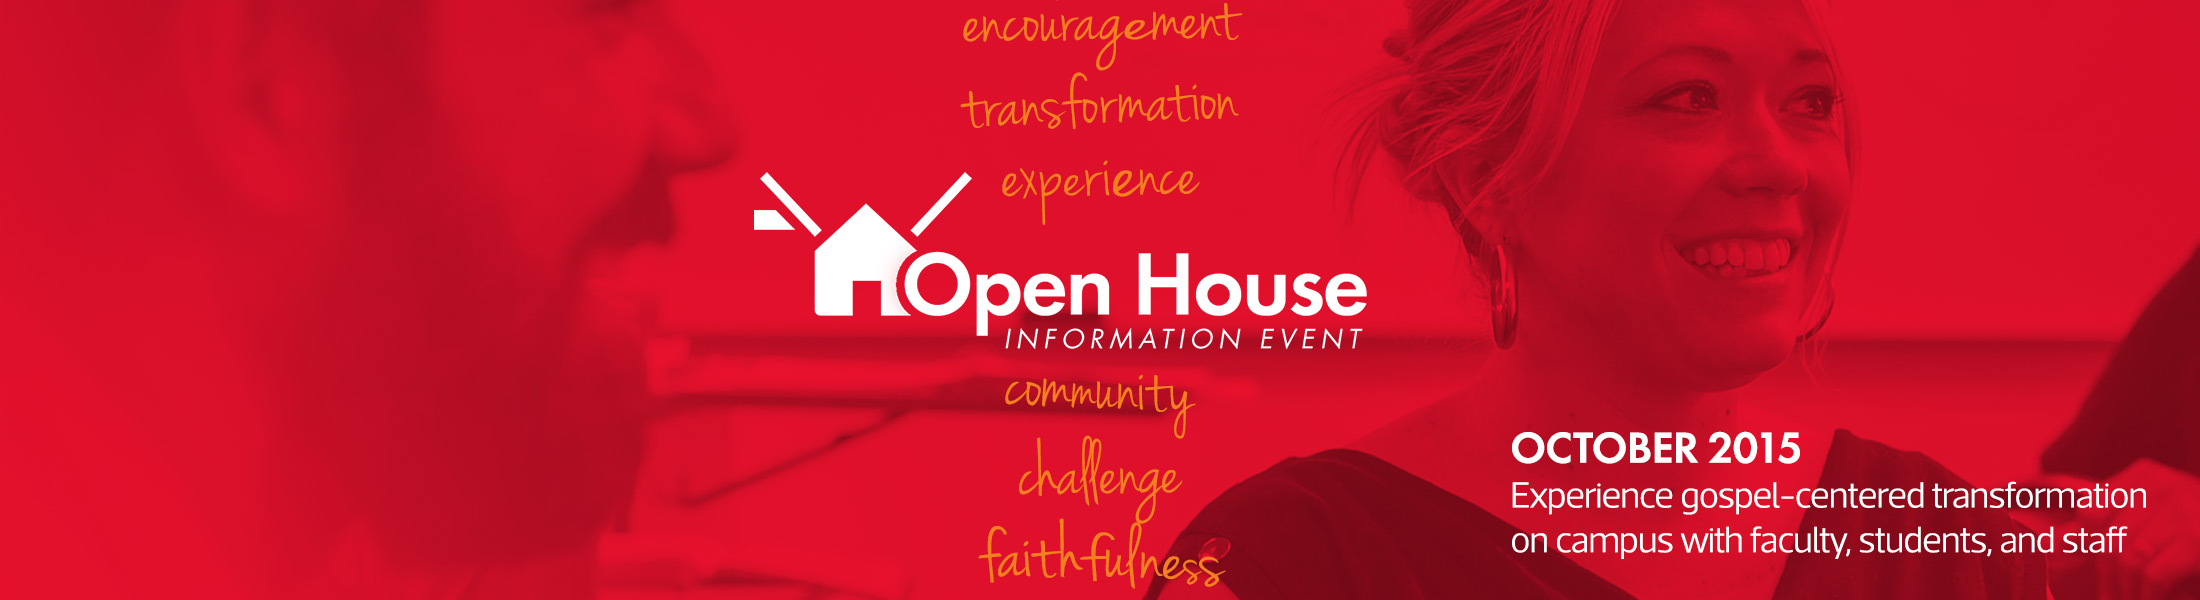 Join us at an upcoming Open House Information Event